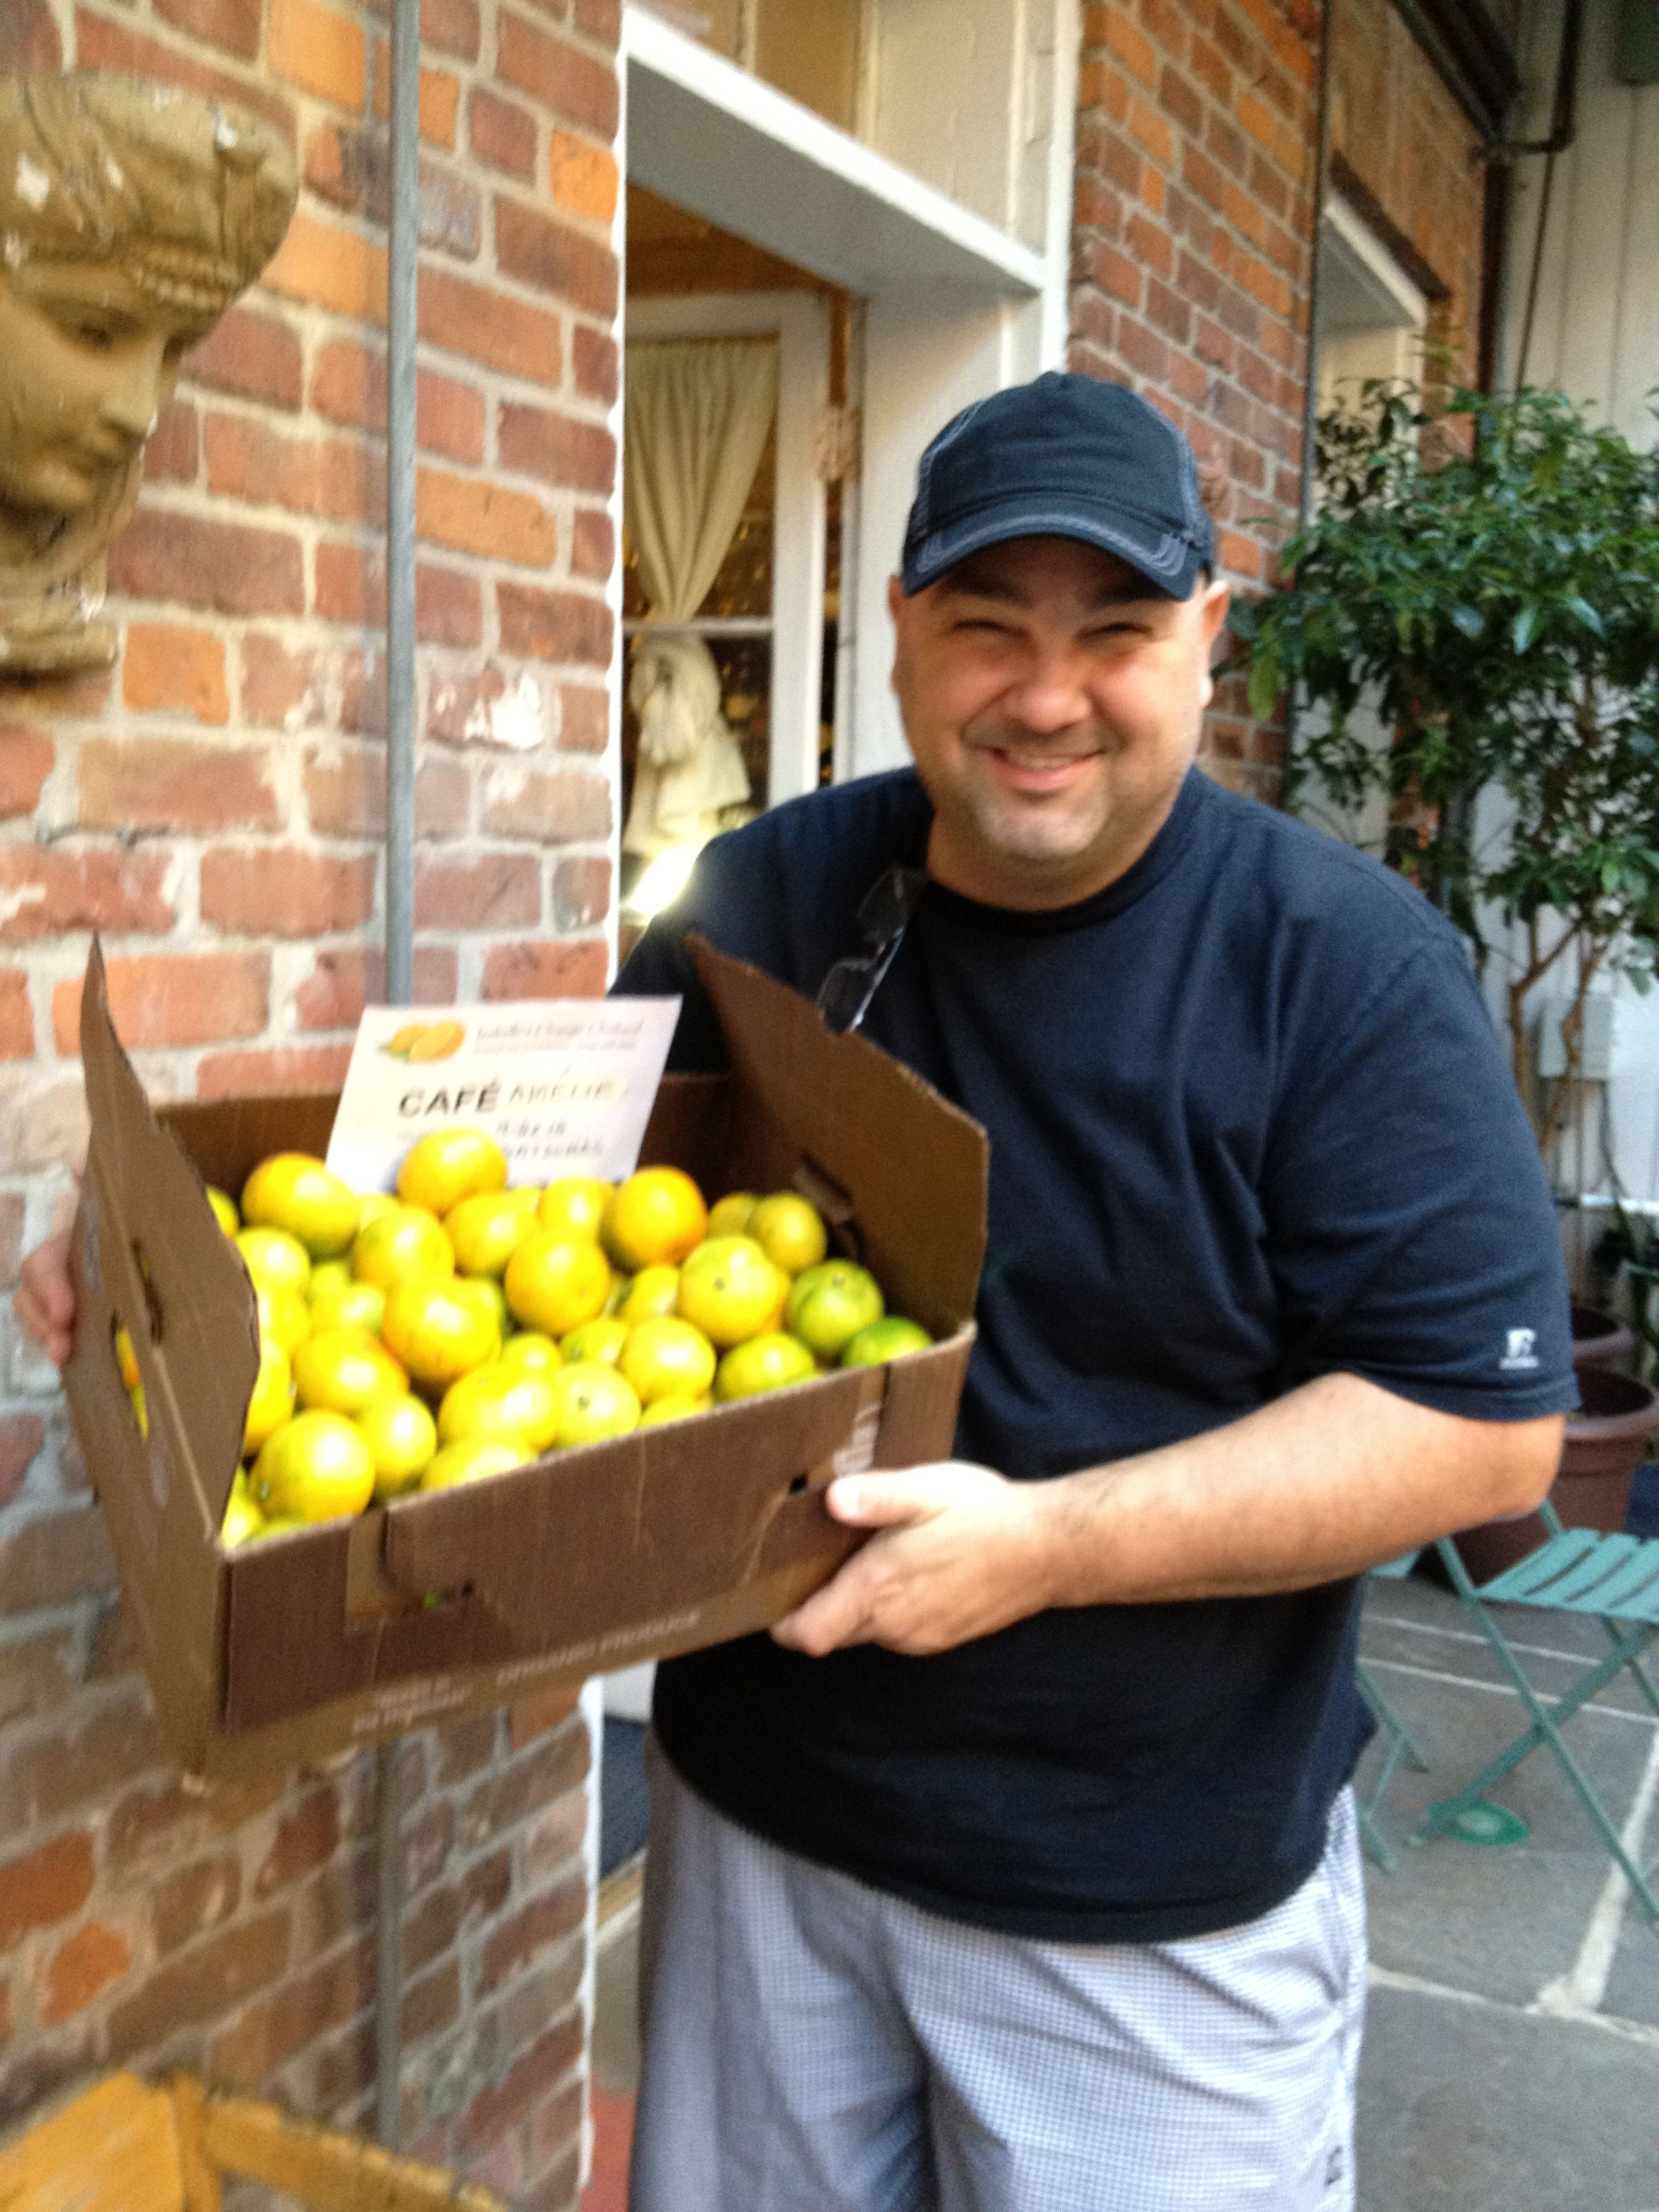 Satsuma delivery to Chef Jerry Mixon at Cafe Ameliefirst